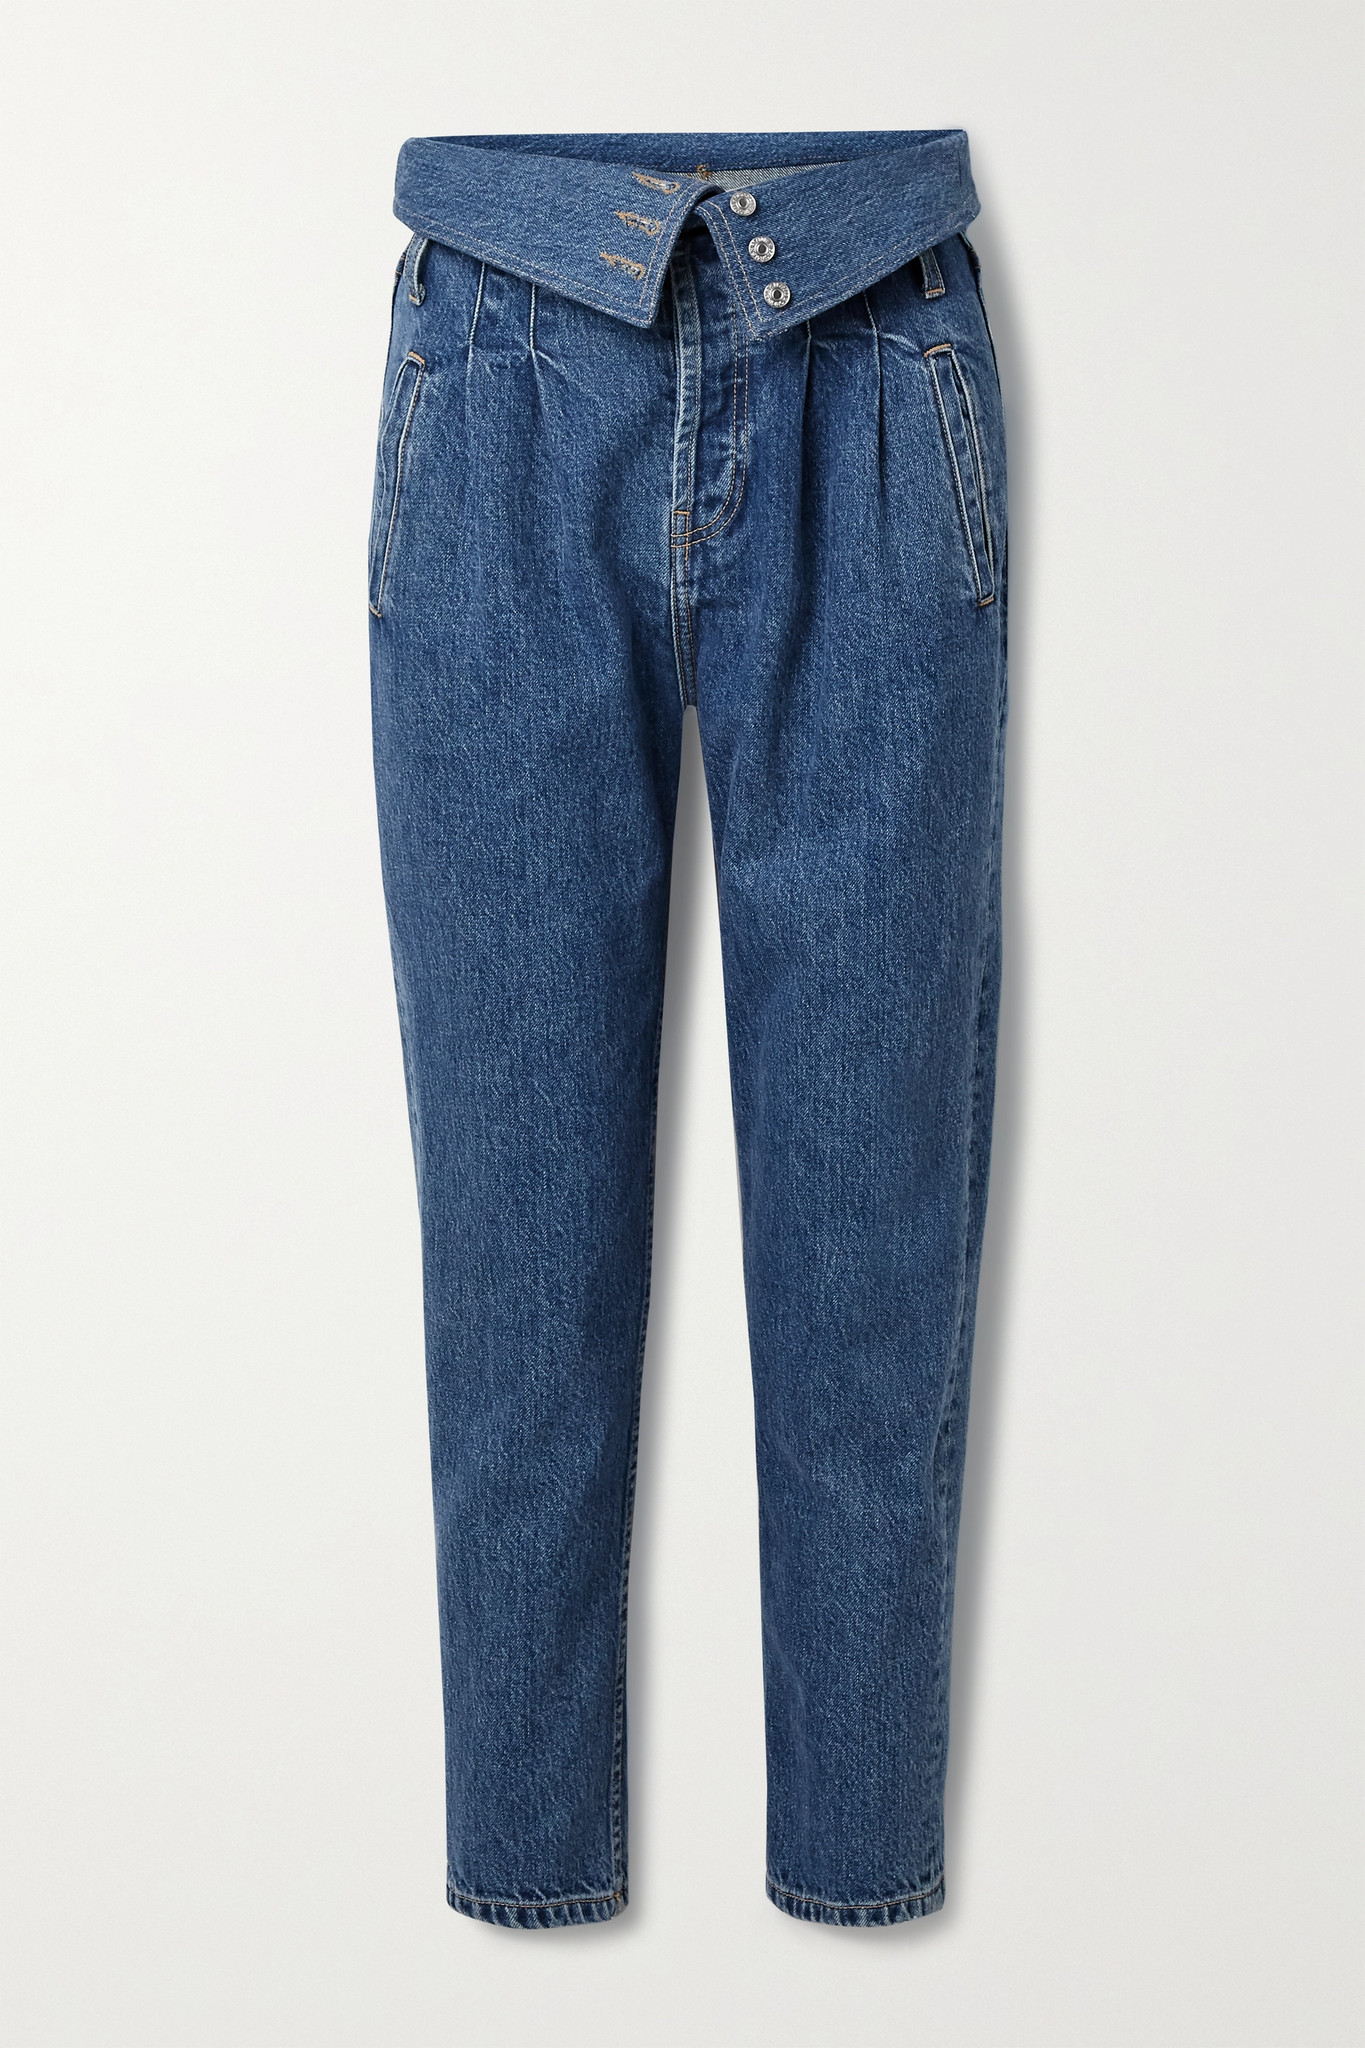 RE/DONE - 80s Fold-over High-rise Tapered Jeans - Blue - 29